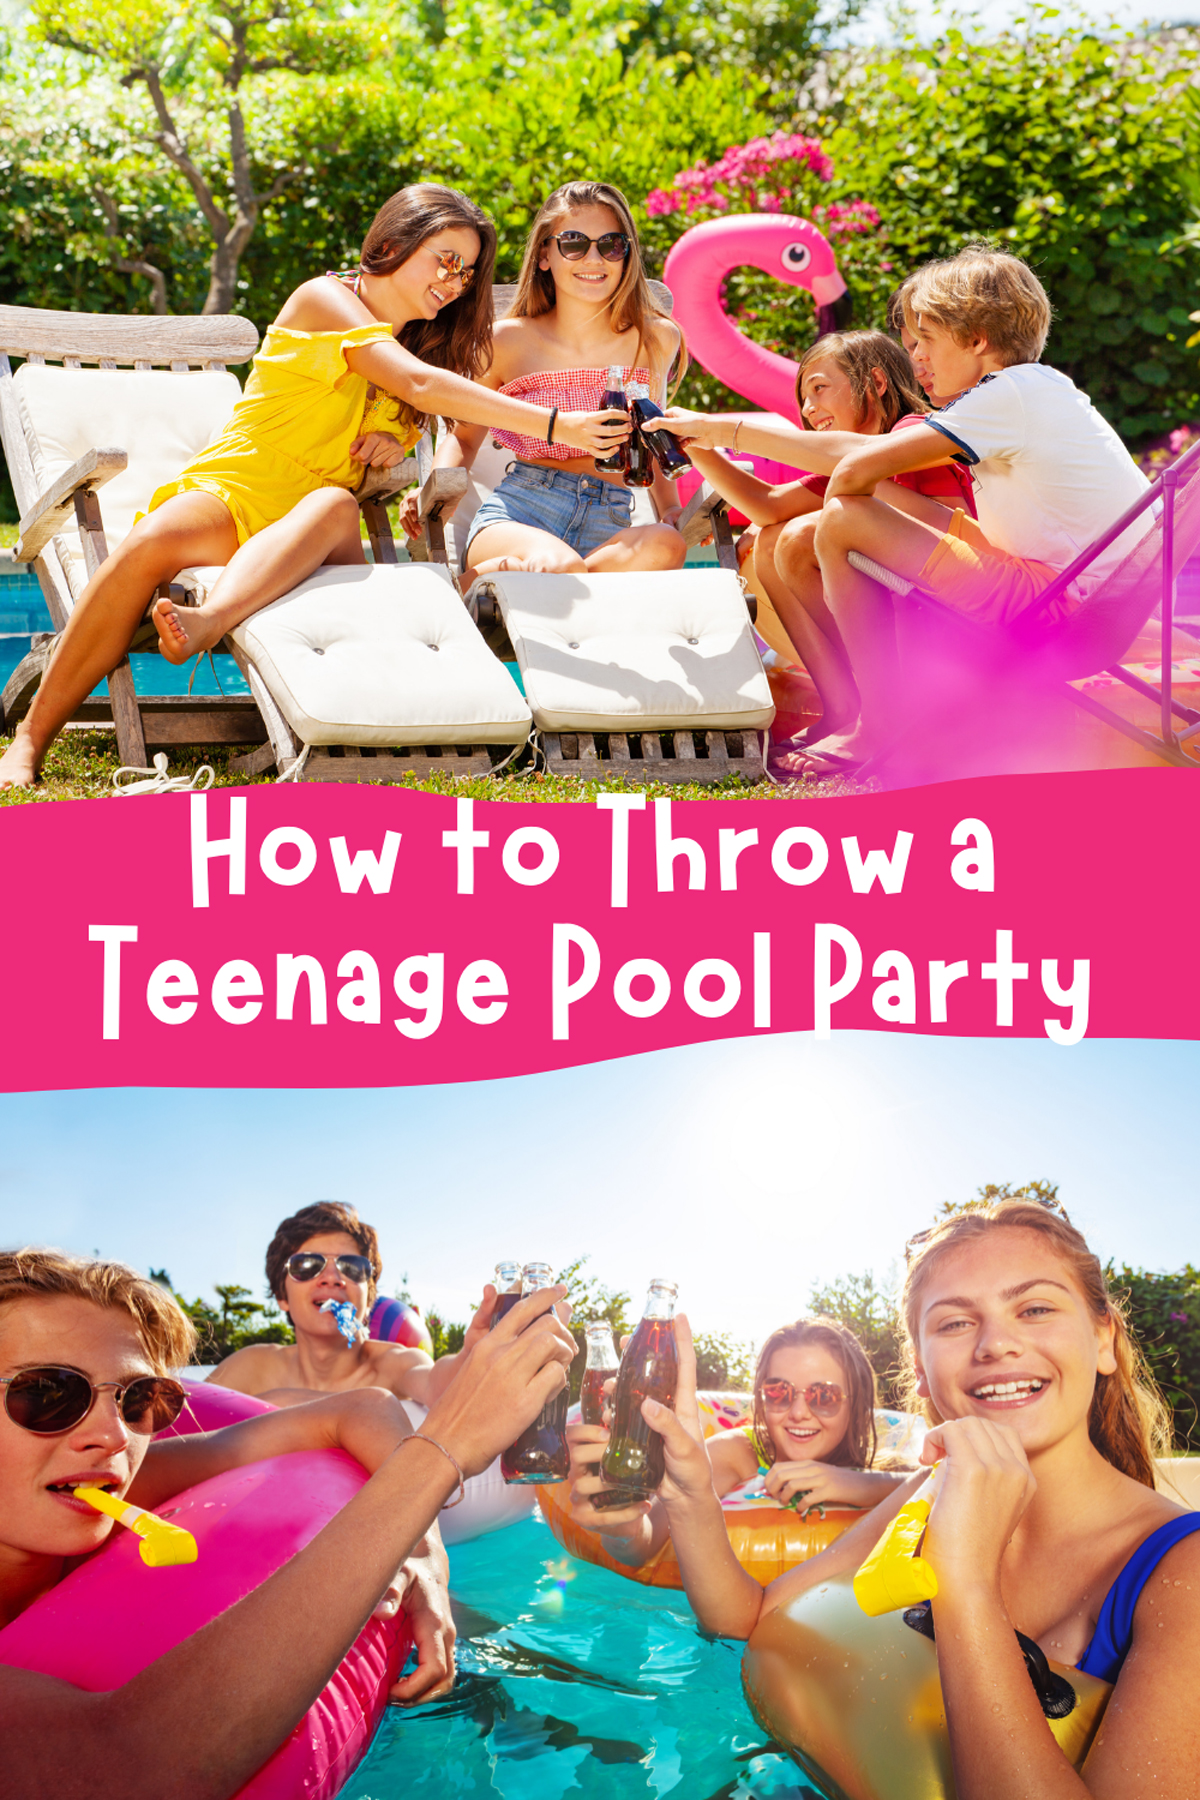 How to Throw a Teenage Pool Party